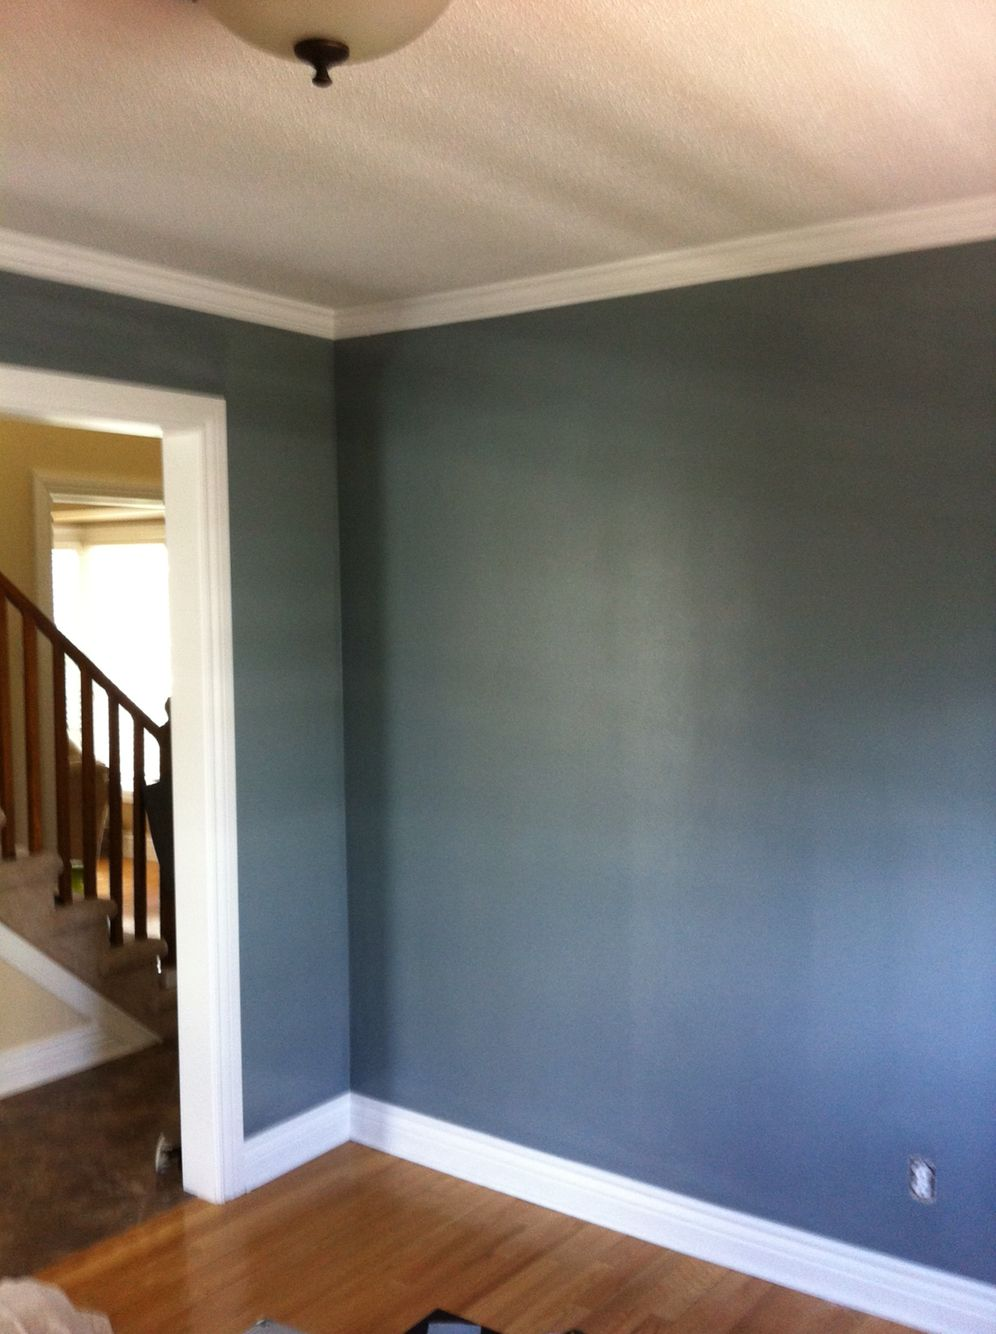 Behr atmospheric 2 coats in eggshell for dining room ️